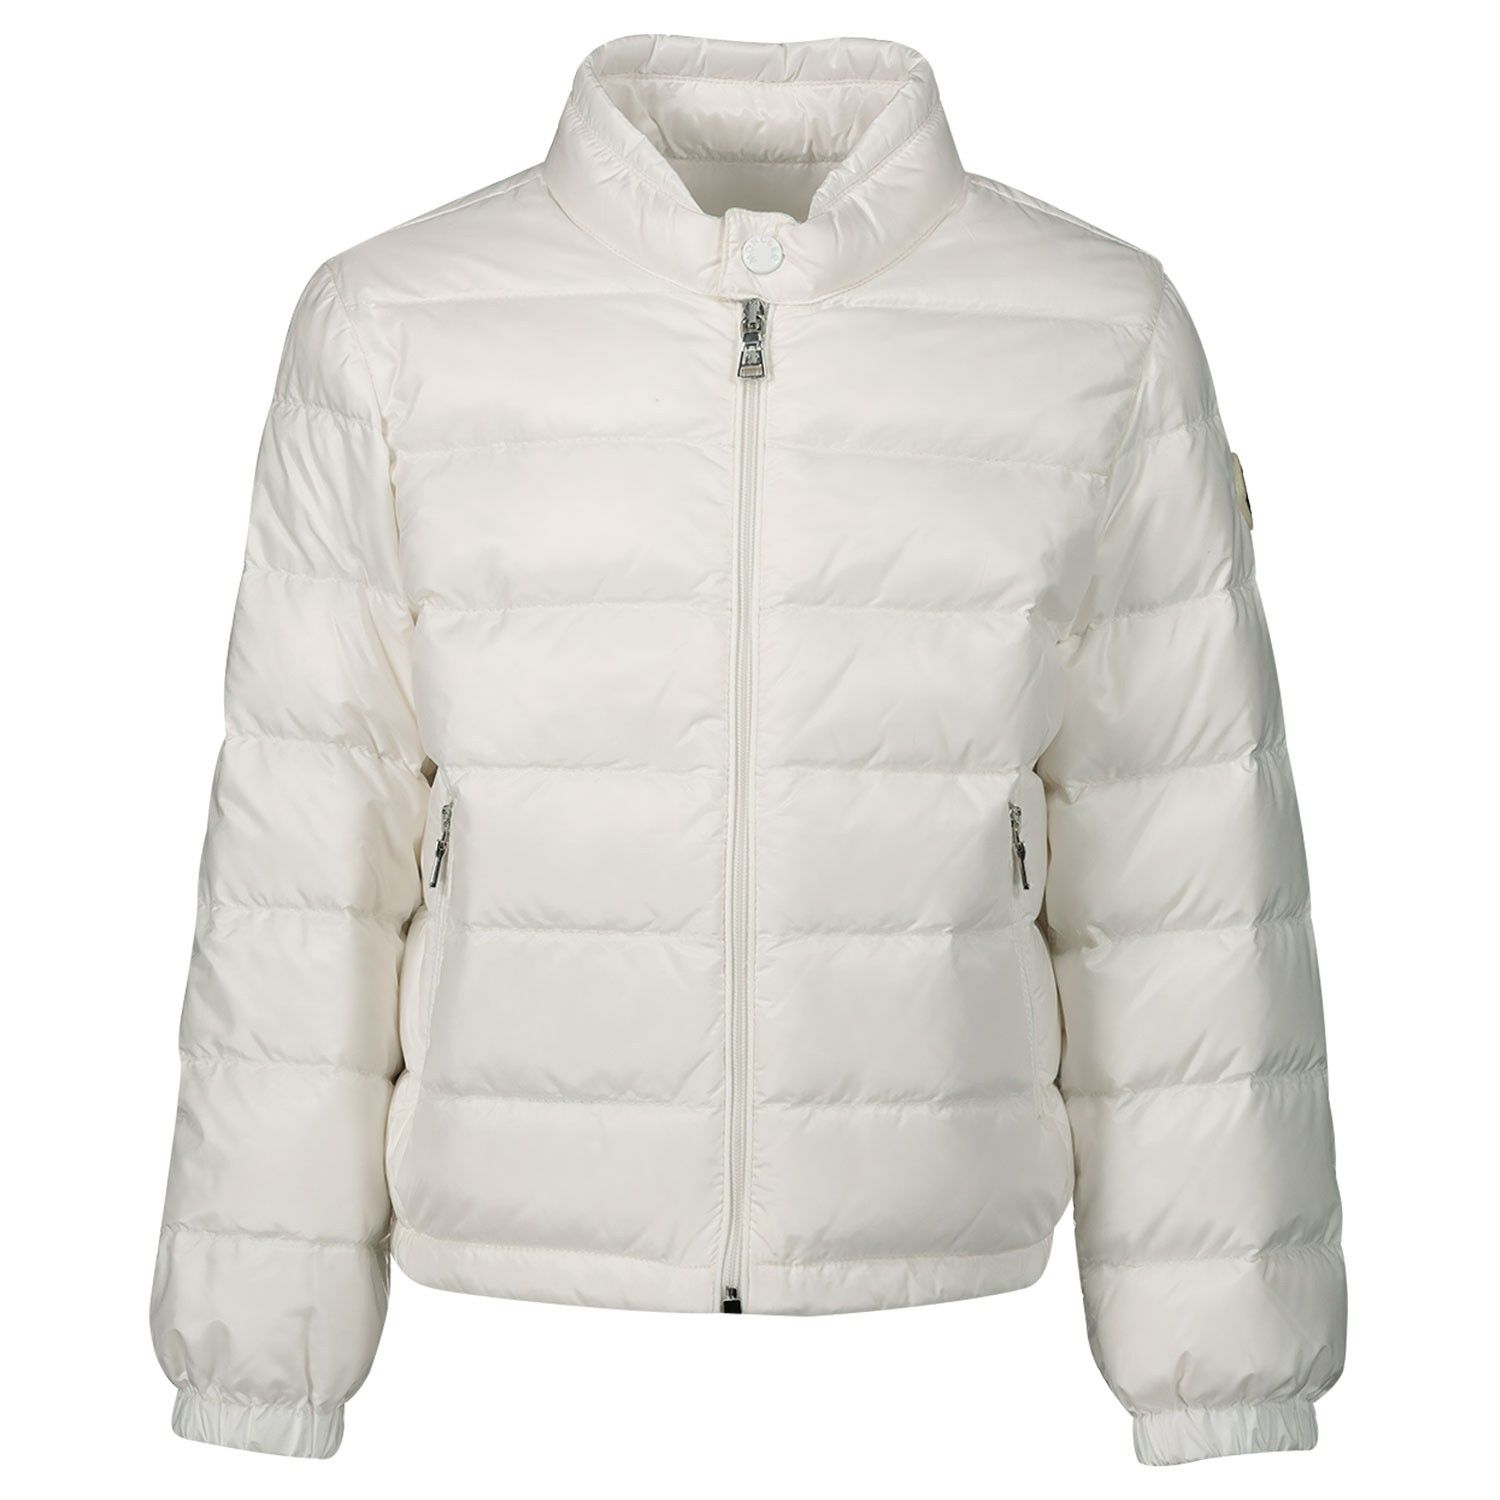 Picture of Moncler 1A10400 baby coat off white